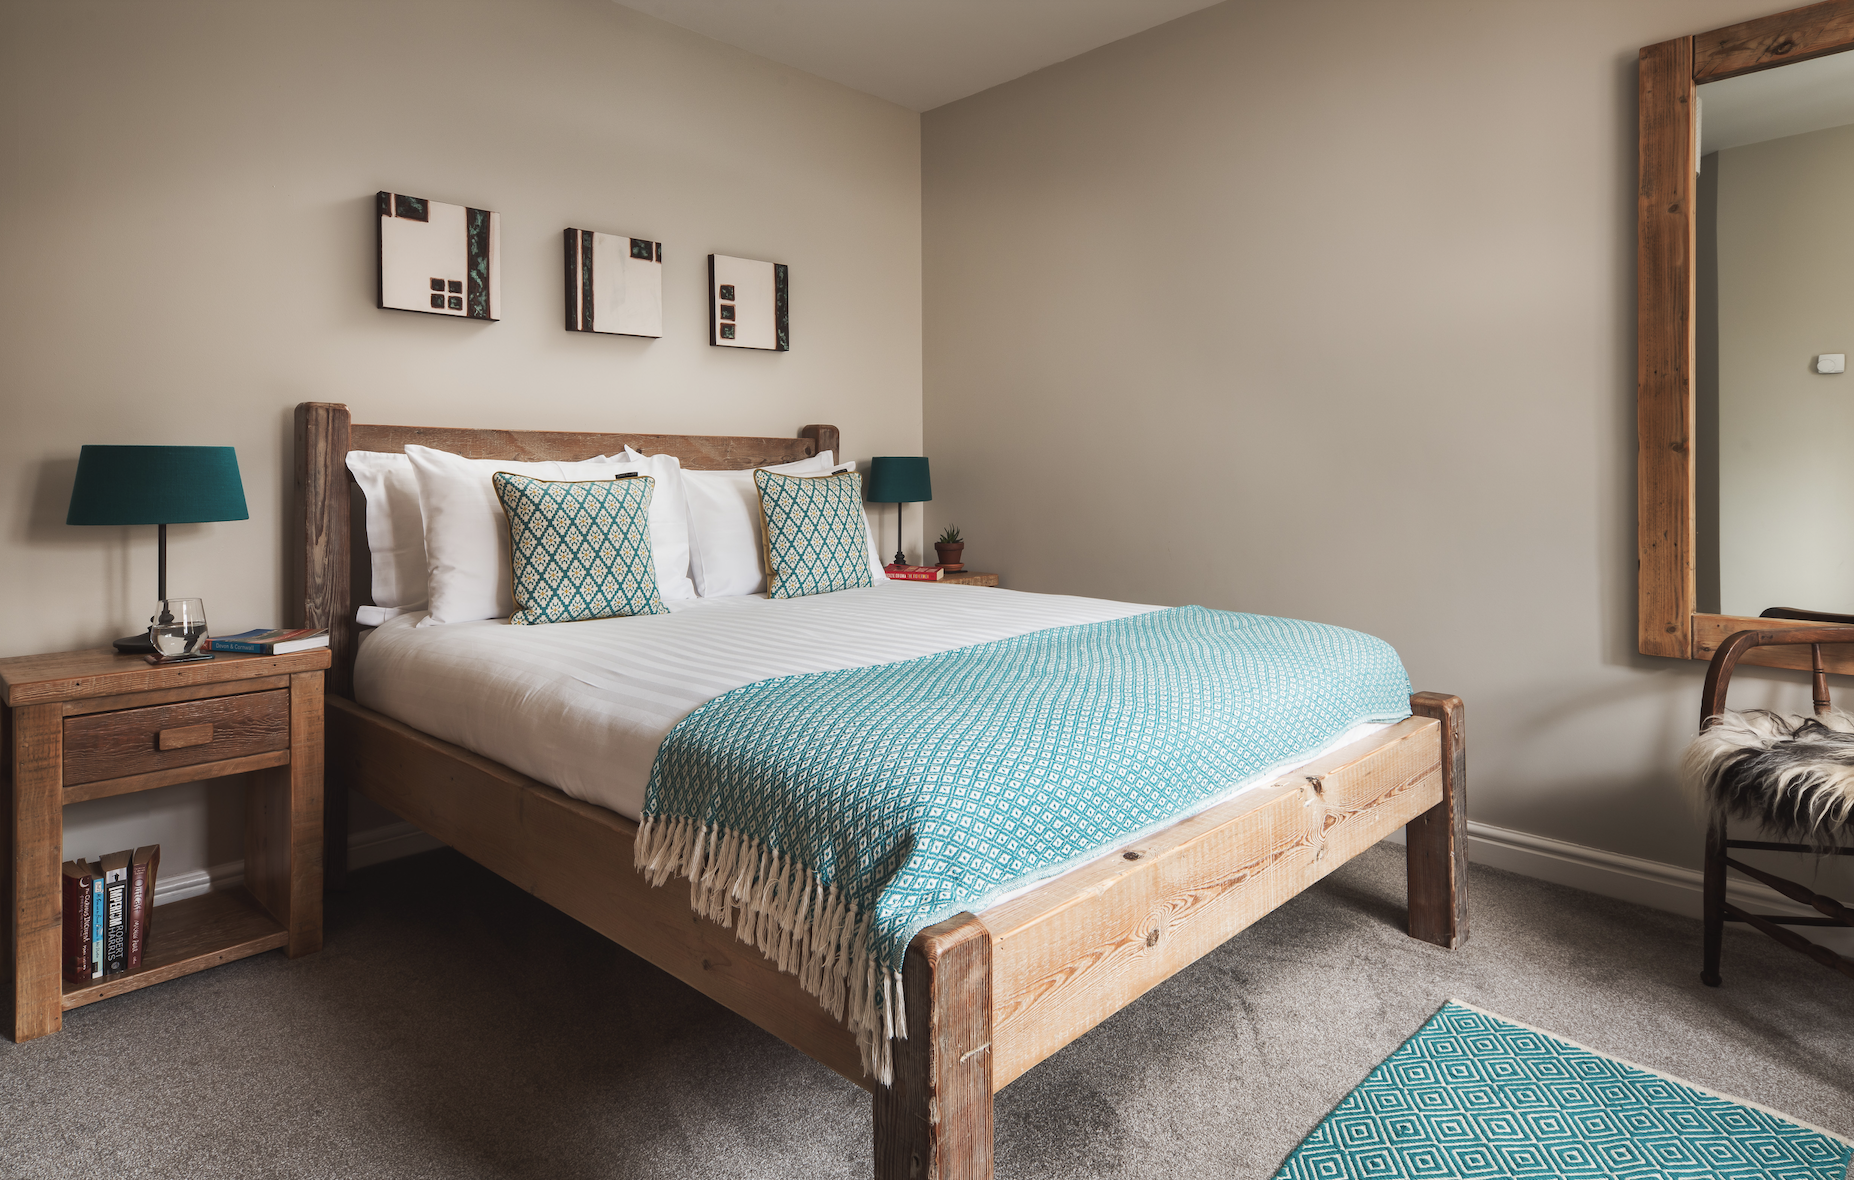 Second king size bedroom with brown and aquamarine theme at Gwlemor dog-friendly holiday cottage in Widemouth Bay, north Cornwall